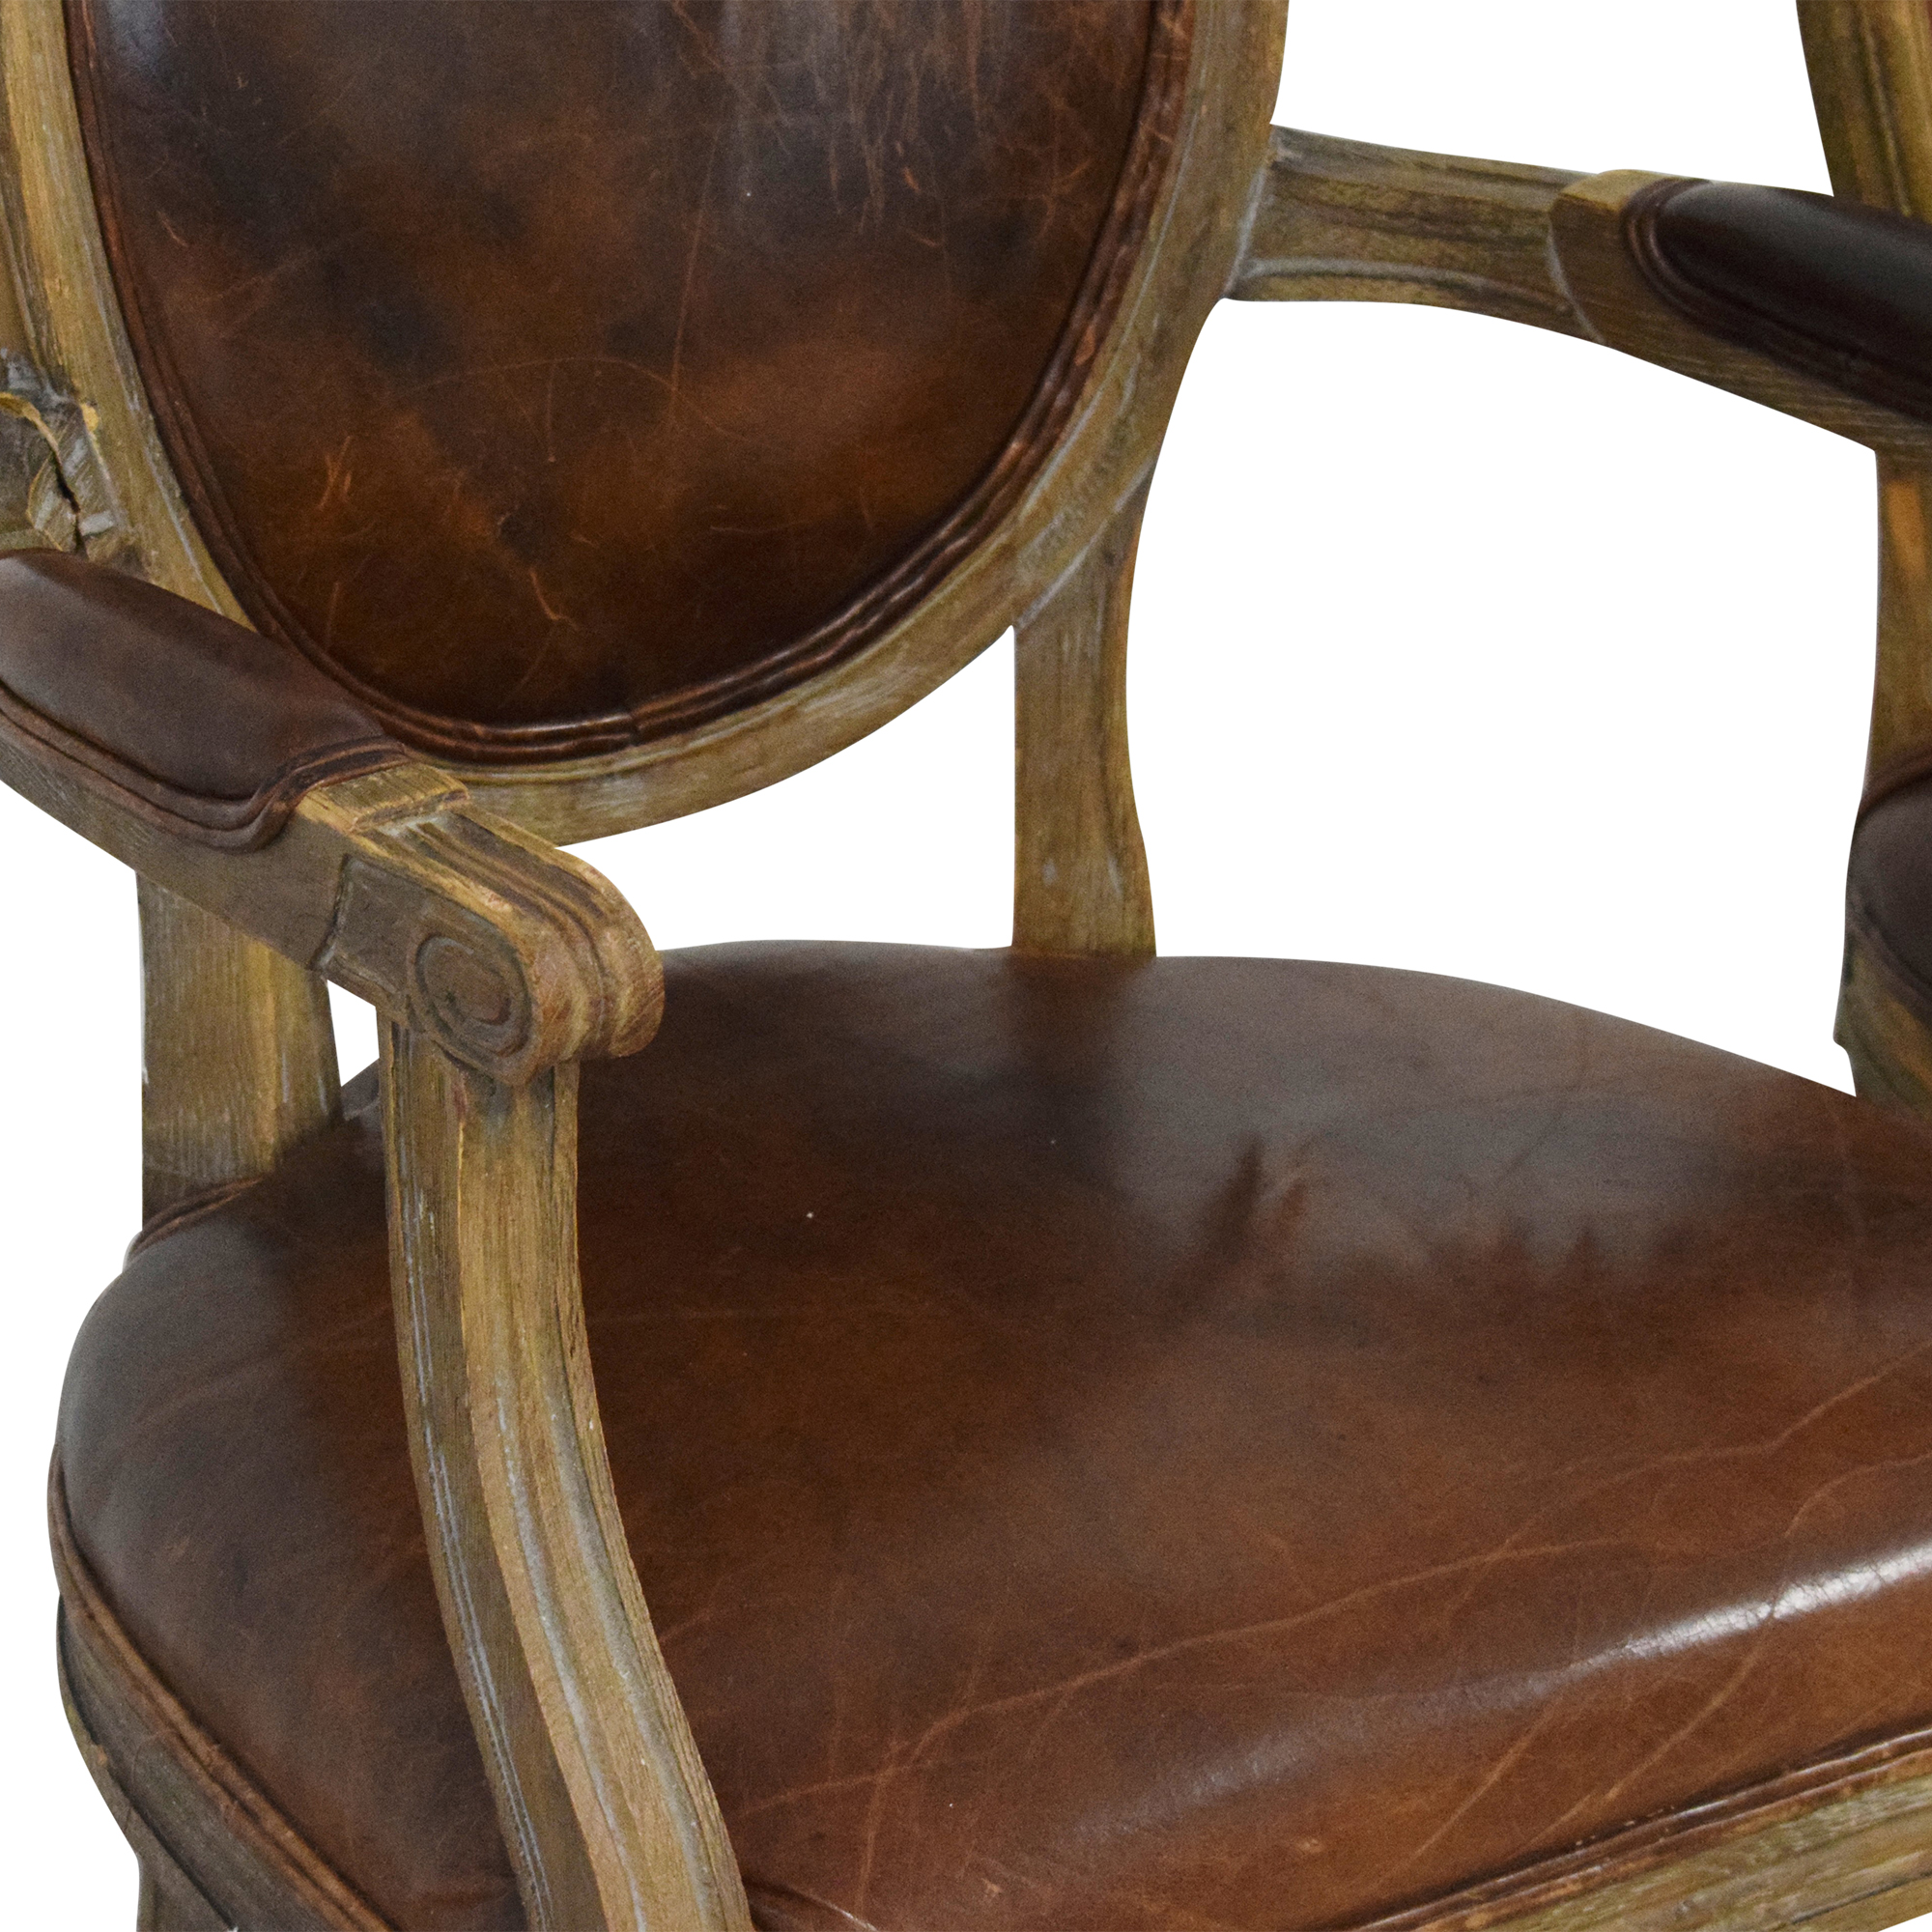 Restoration Hardware Restoration Hardware Vintage French Round Dining Chairs for sale